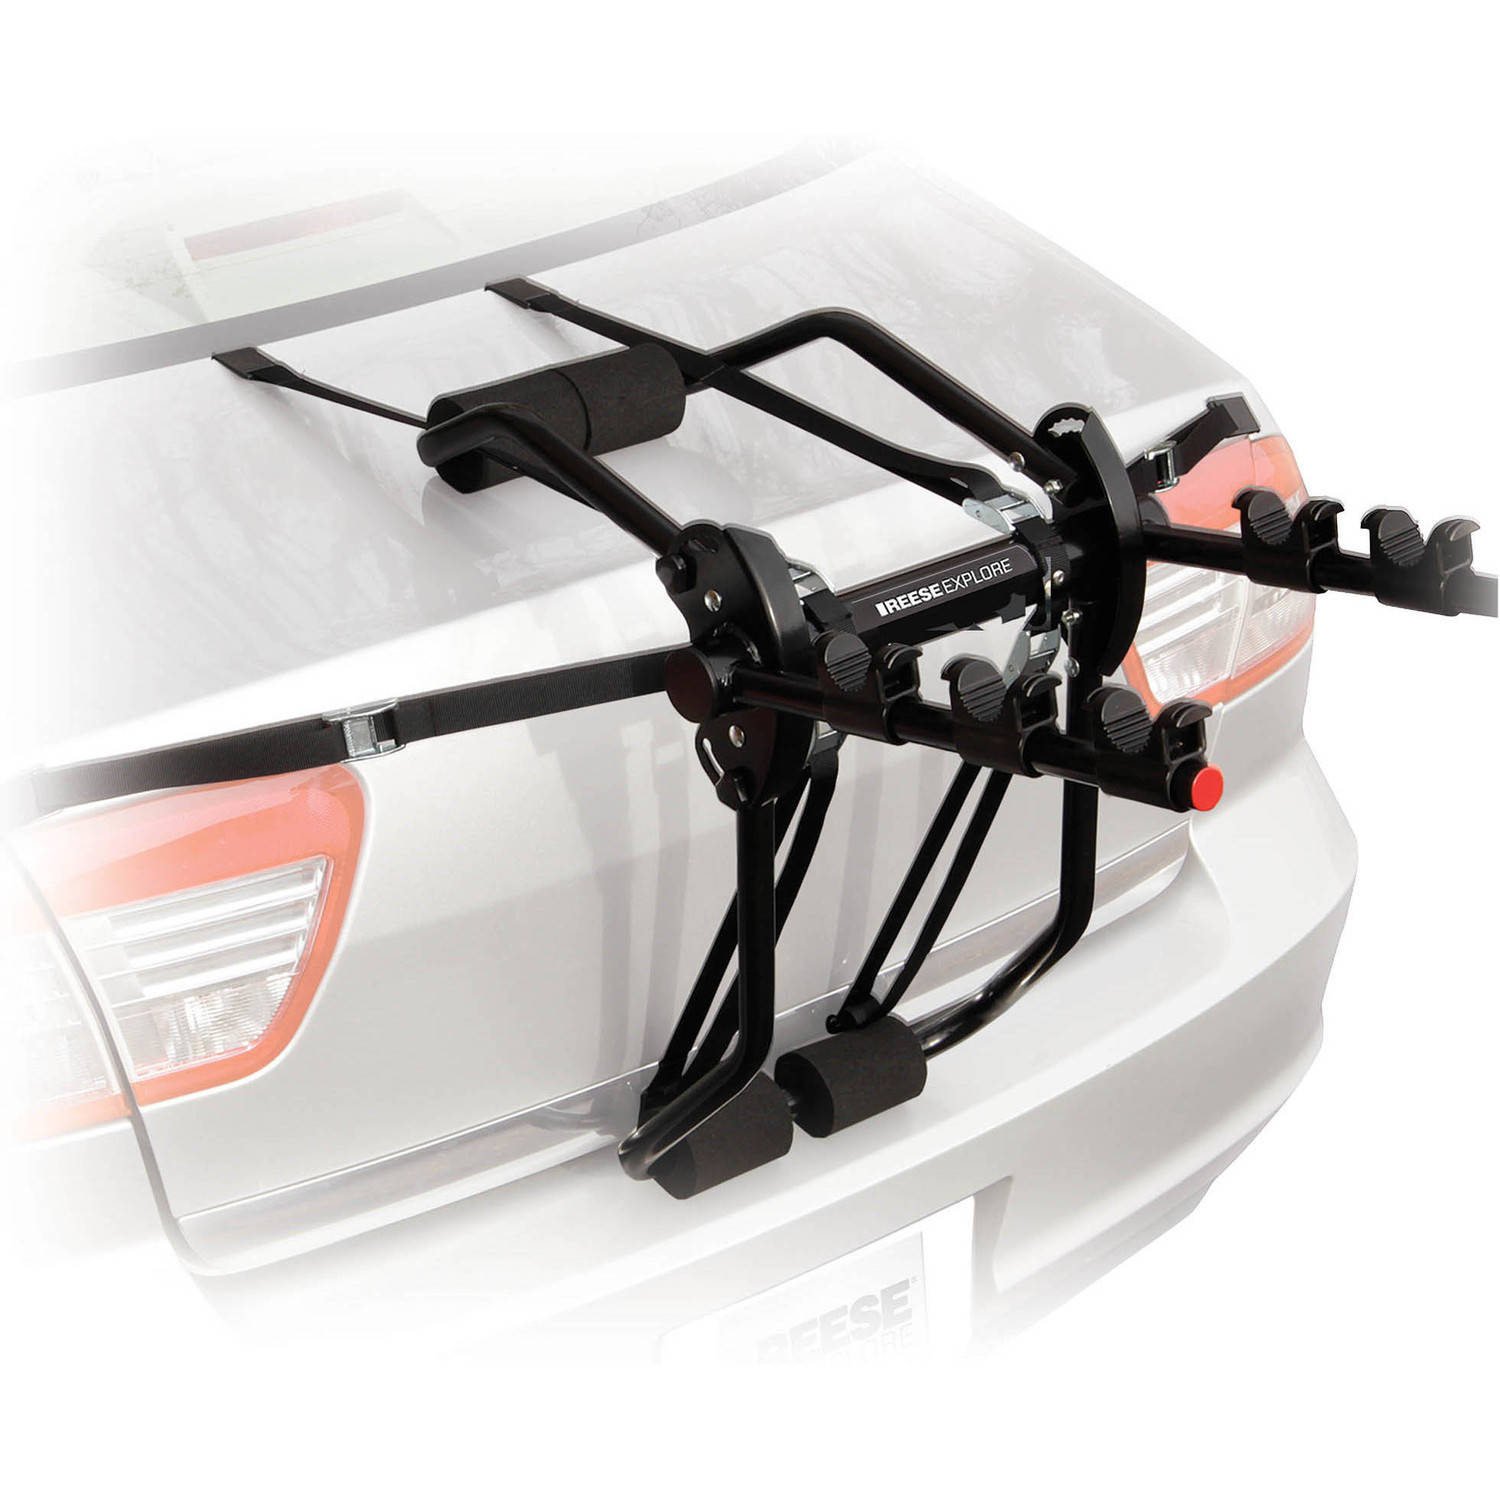 Reese Carry Power Axis 3 Trunk Mount Bike Rack, 3 Bikes